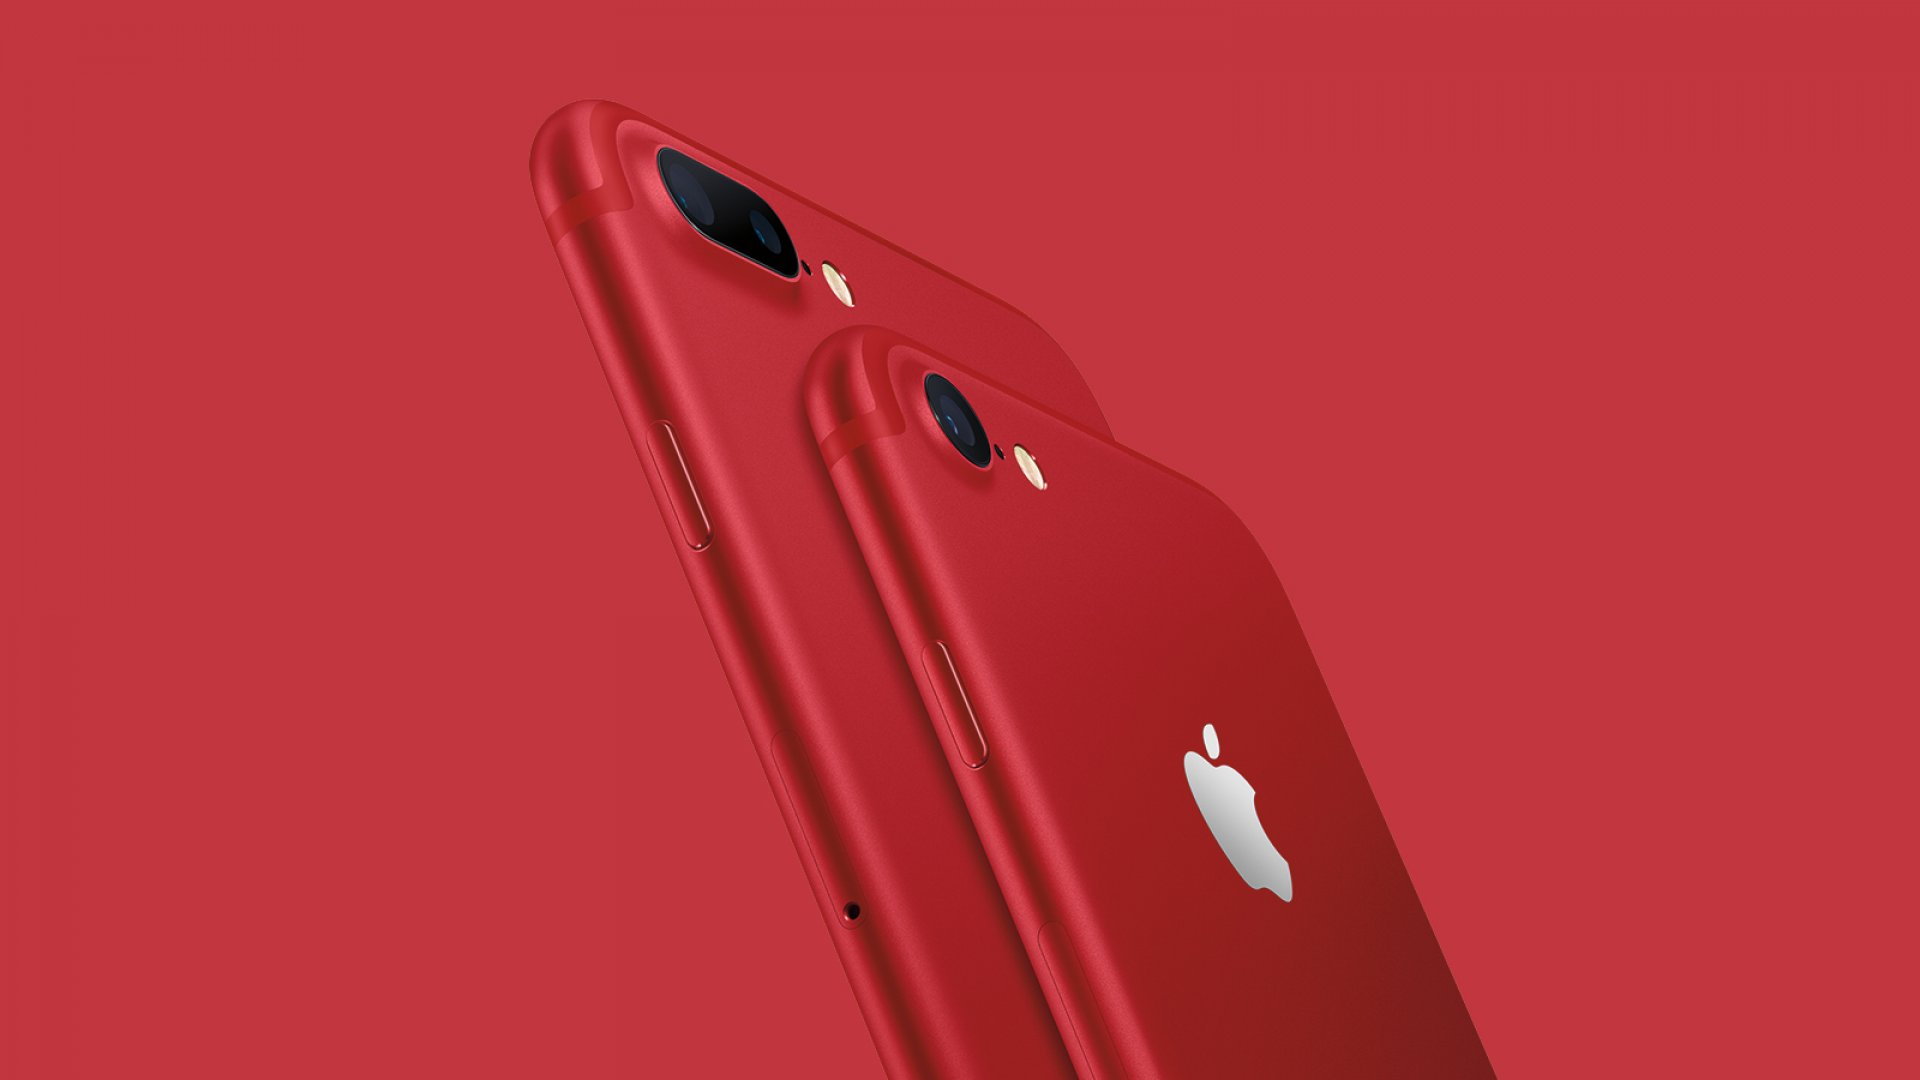 Special Edition iPhone 7 (RED).